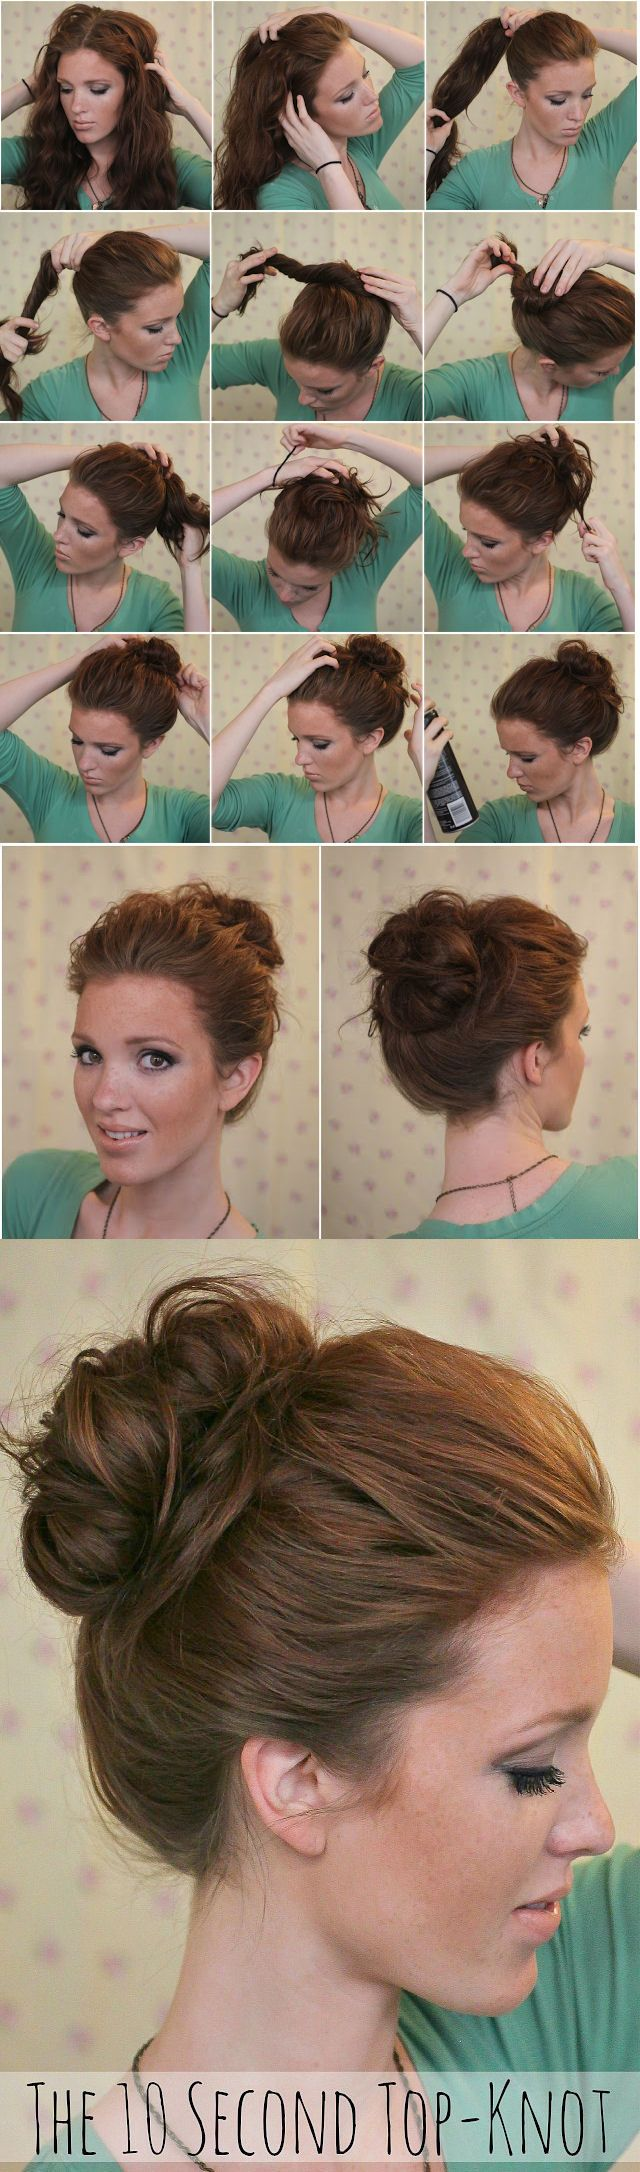 10 Second Top Knot Pictures, Photos, and Images for Facebook, Tumblr, Pinterest, and Twitter